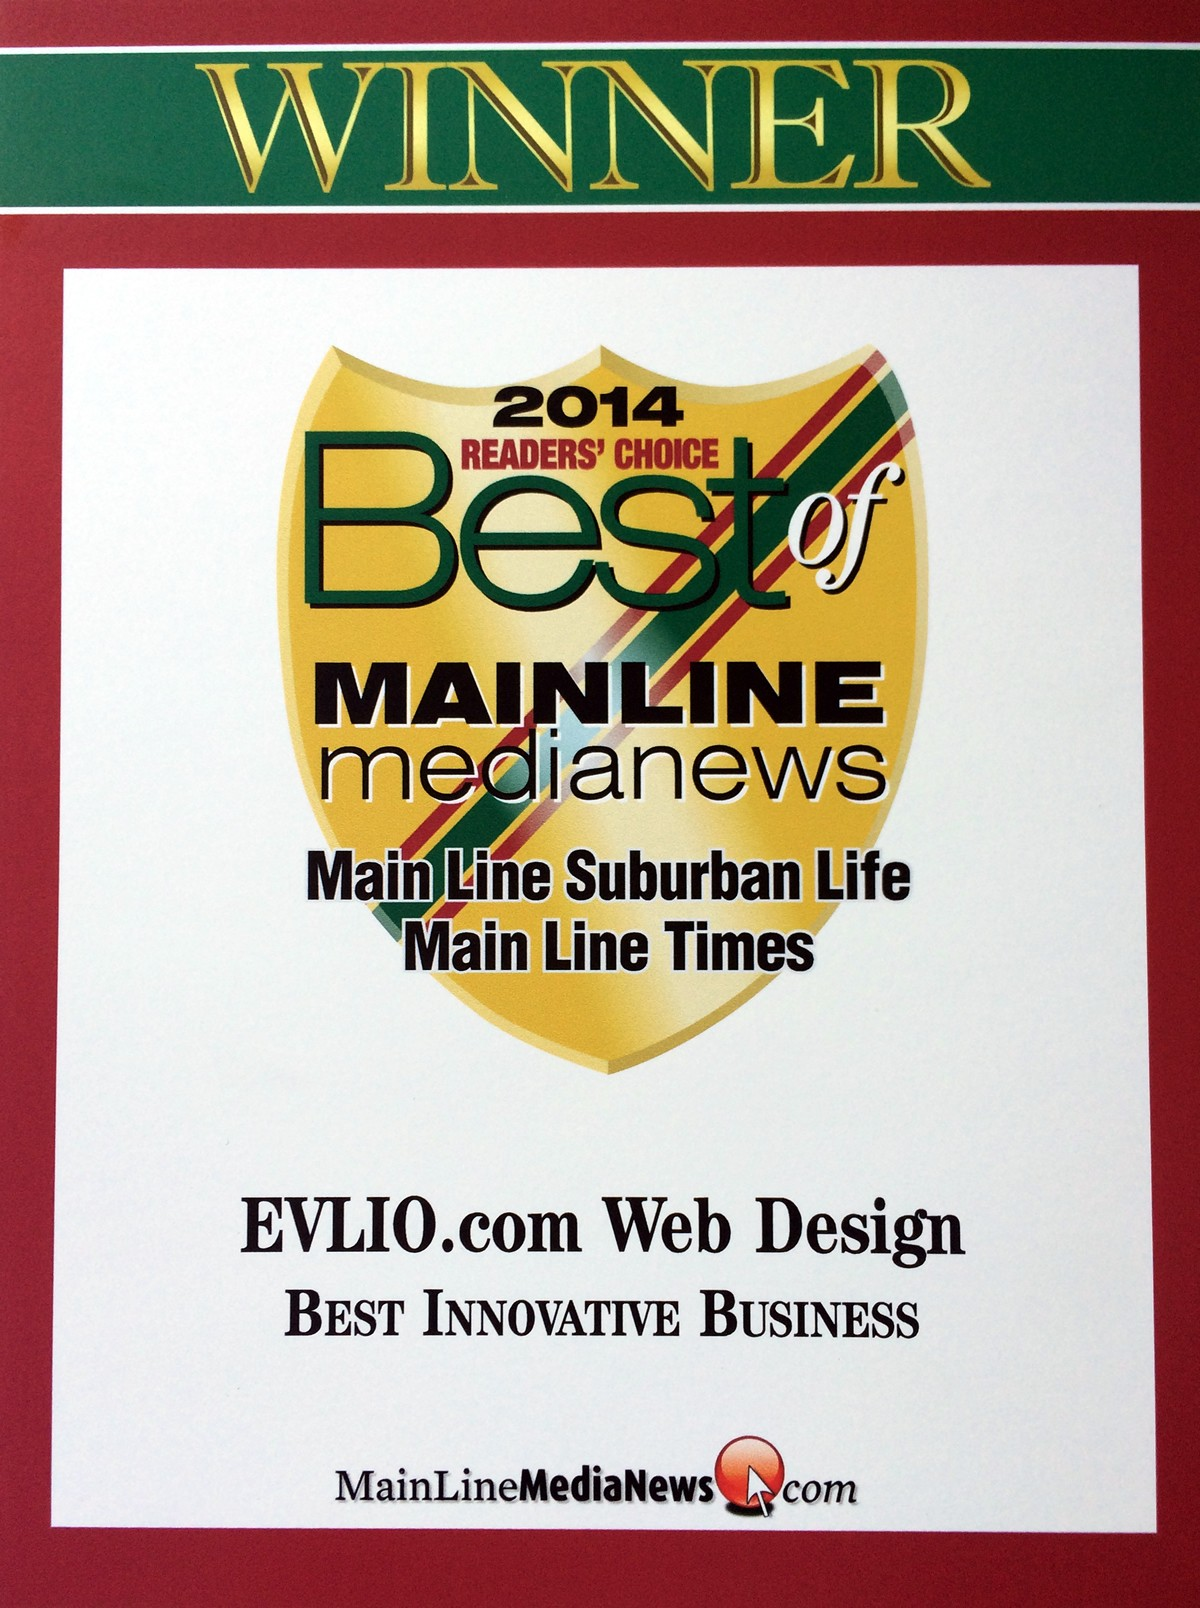 BEST OF THE MAINLINE